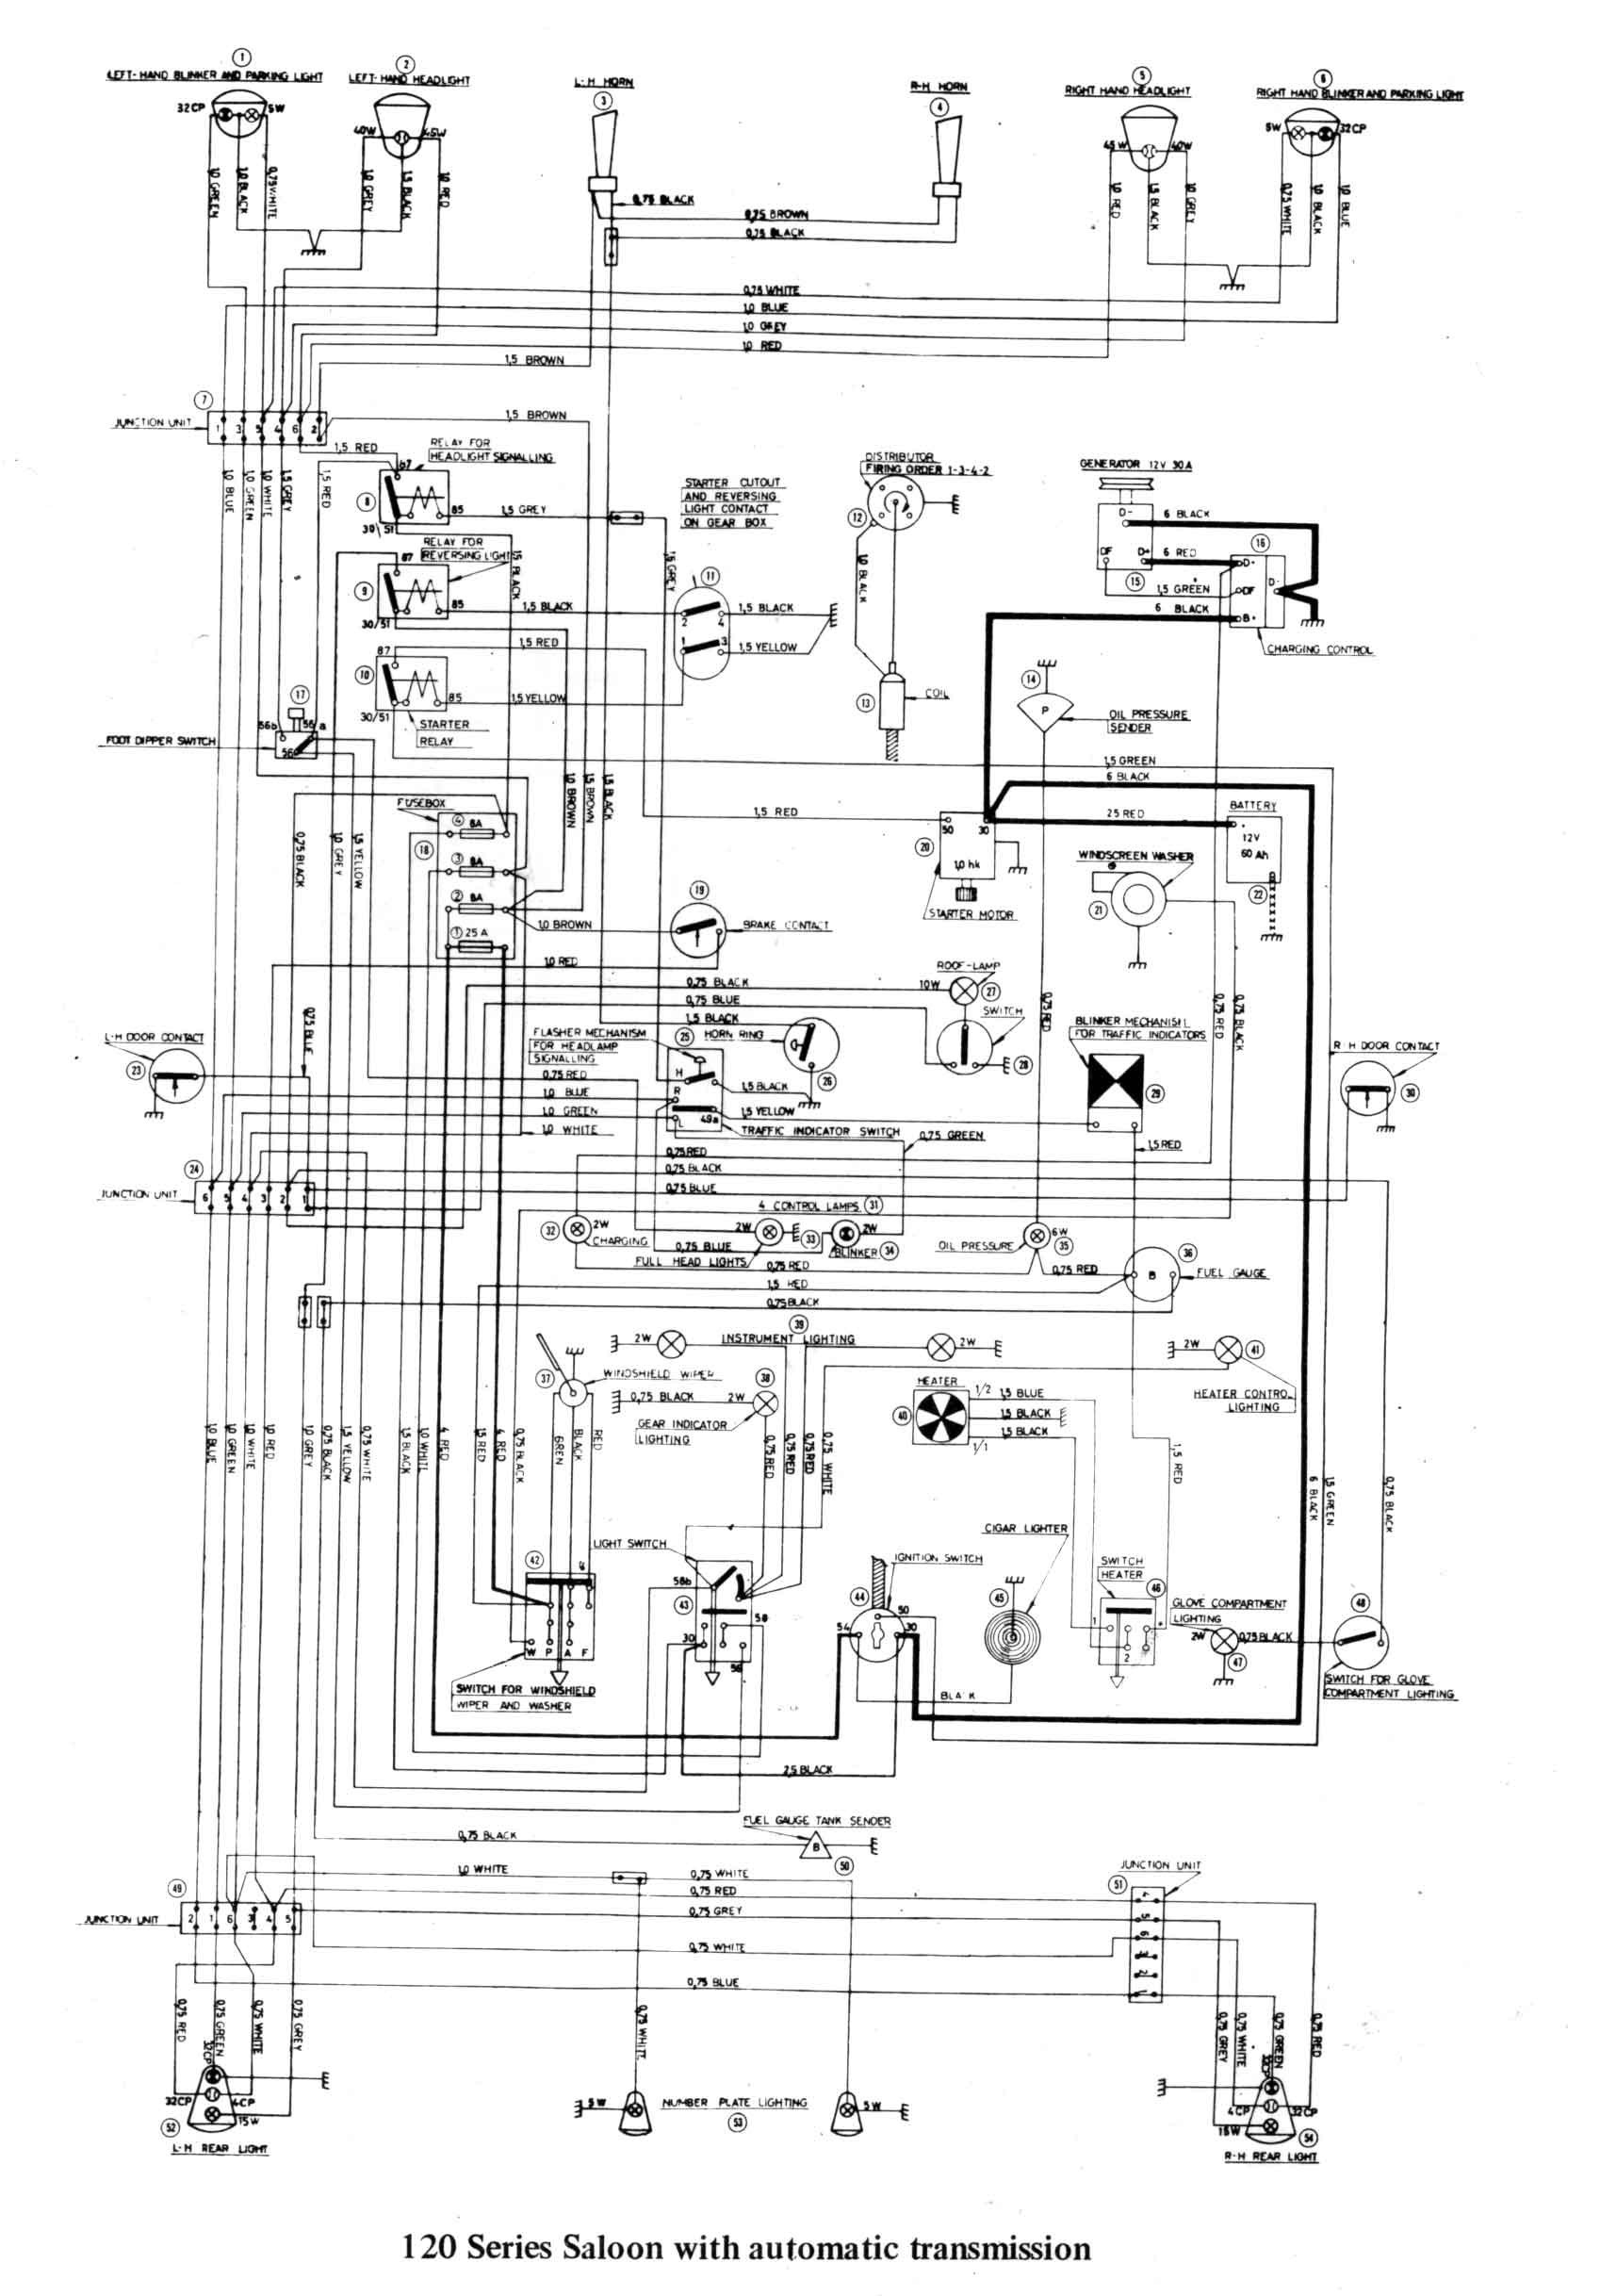 2006 Ford Focus Wiring Schematic - Sony Cdx Fw570 Wiring Diagram for Wiring  Diagram SchematicsWiring Diagram Schematics